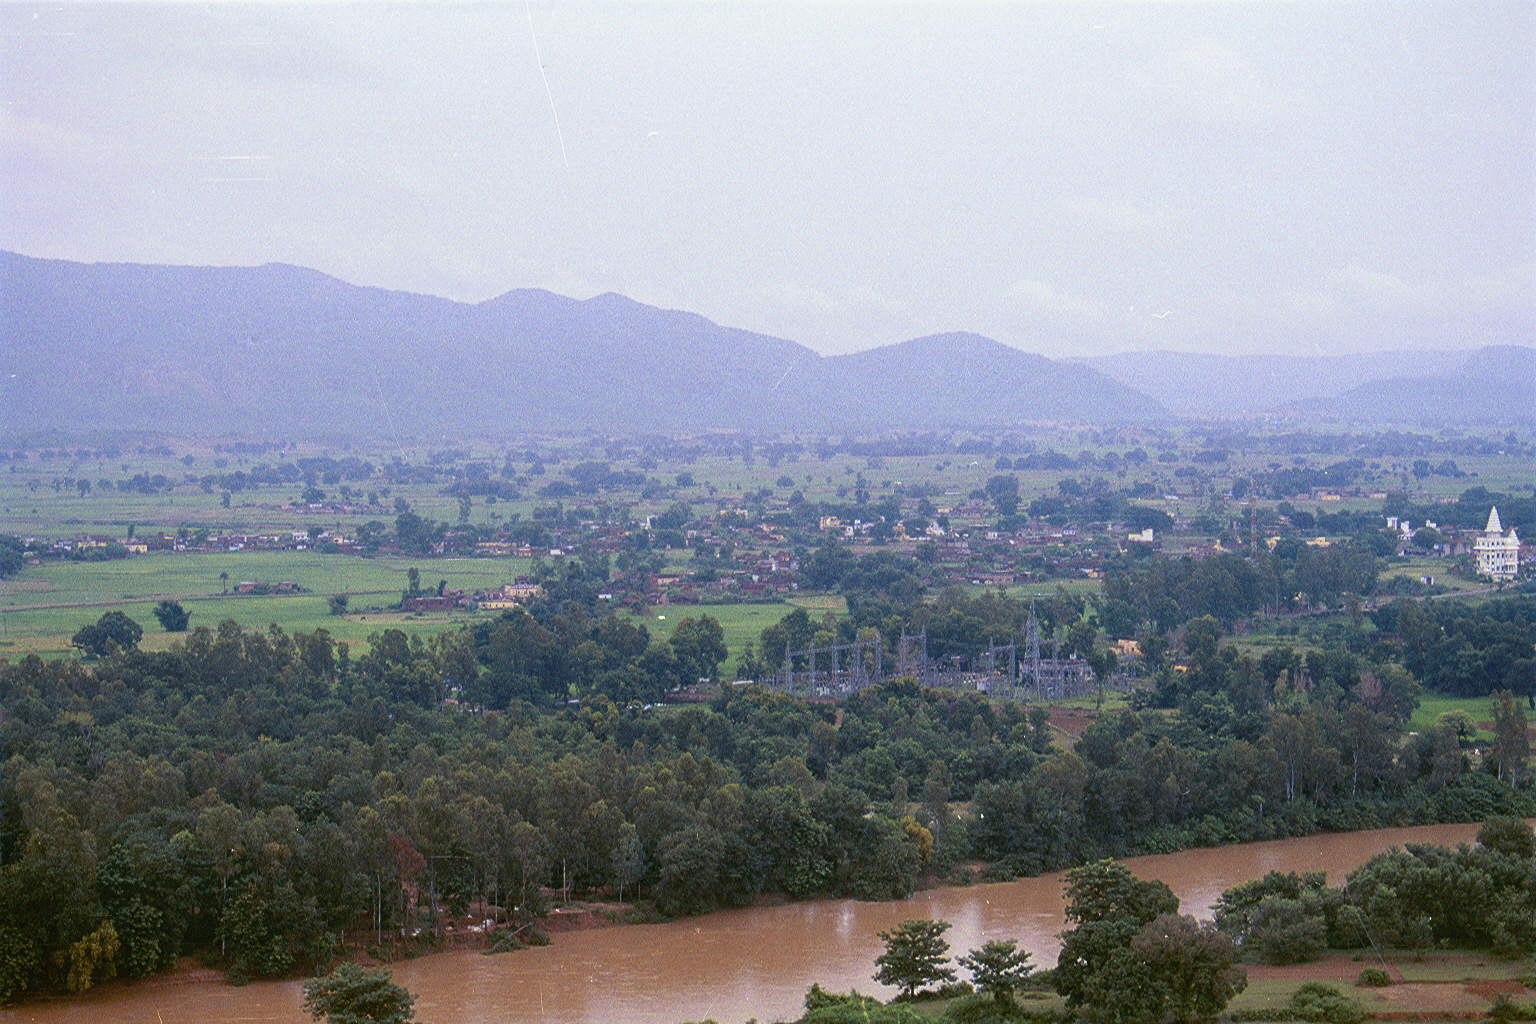 View of 'Mallehpur', in the distant, from the 'Shiva' temple up in the hills